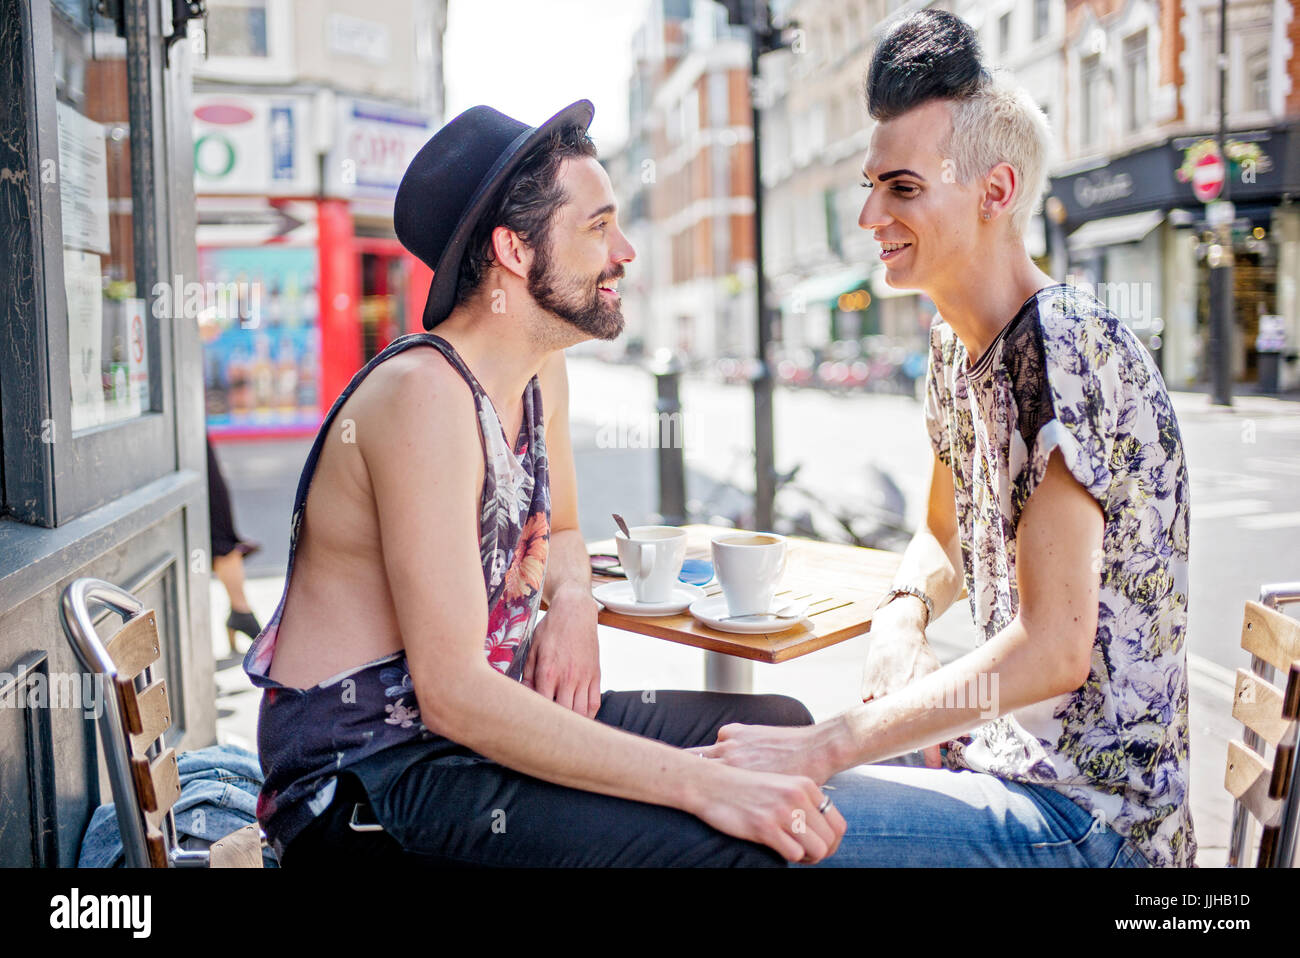 Gay london chat